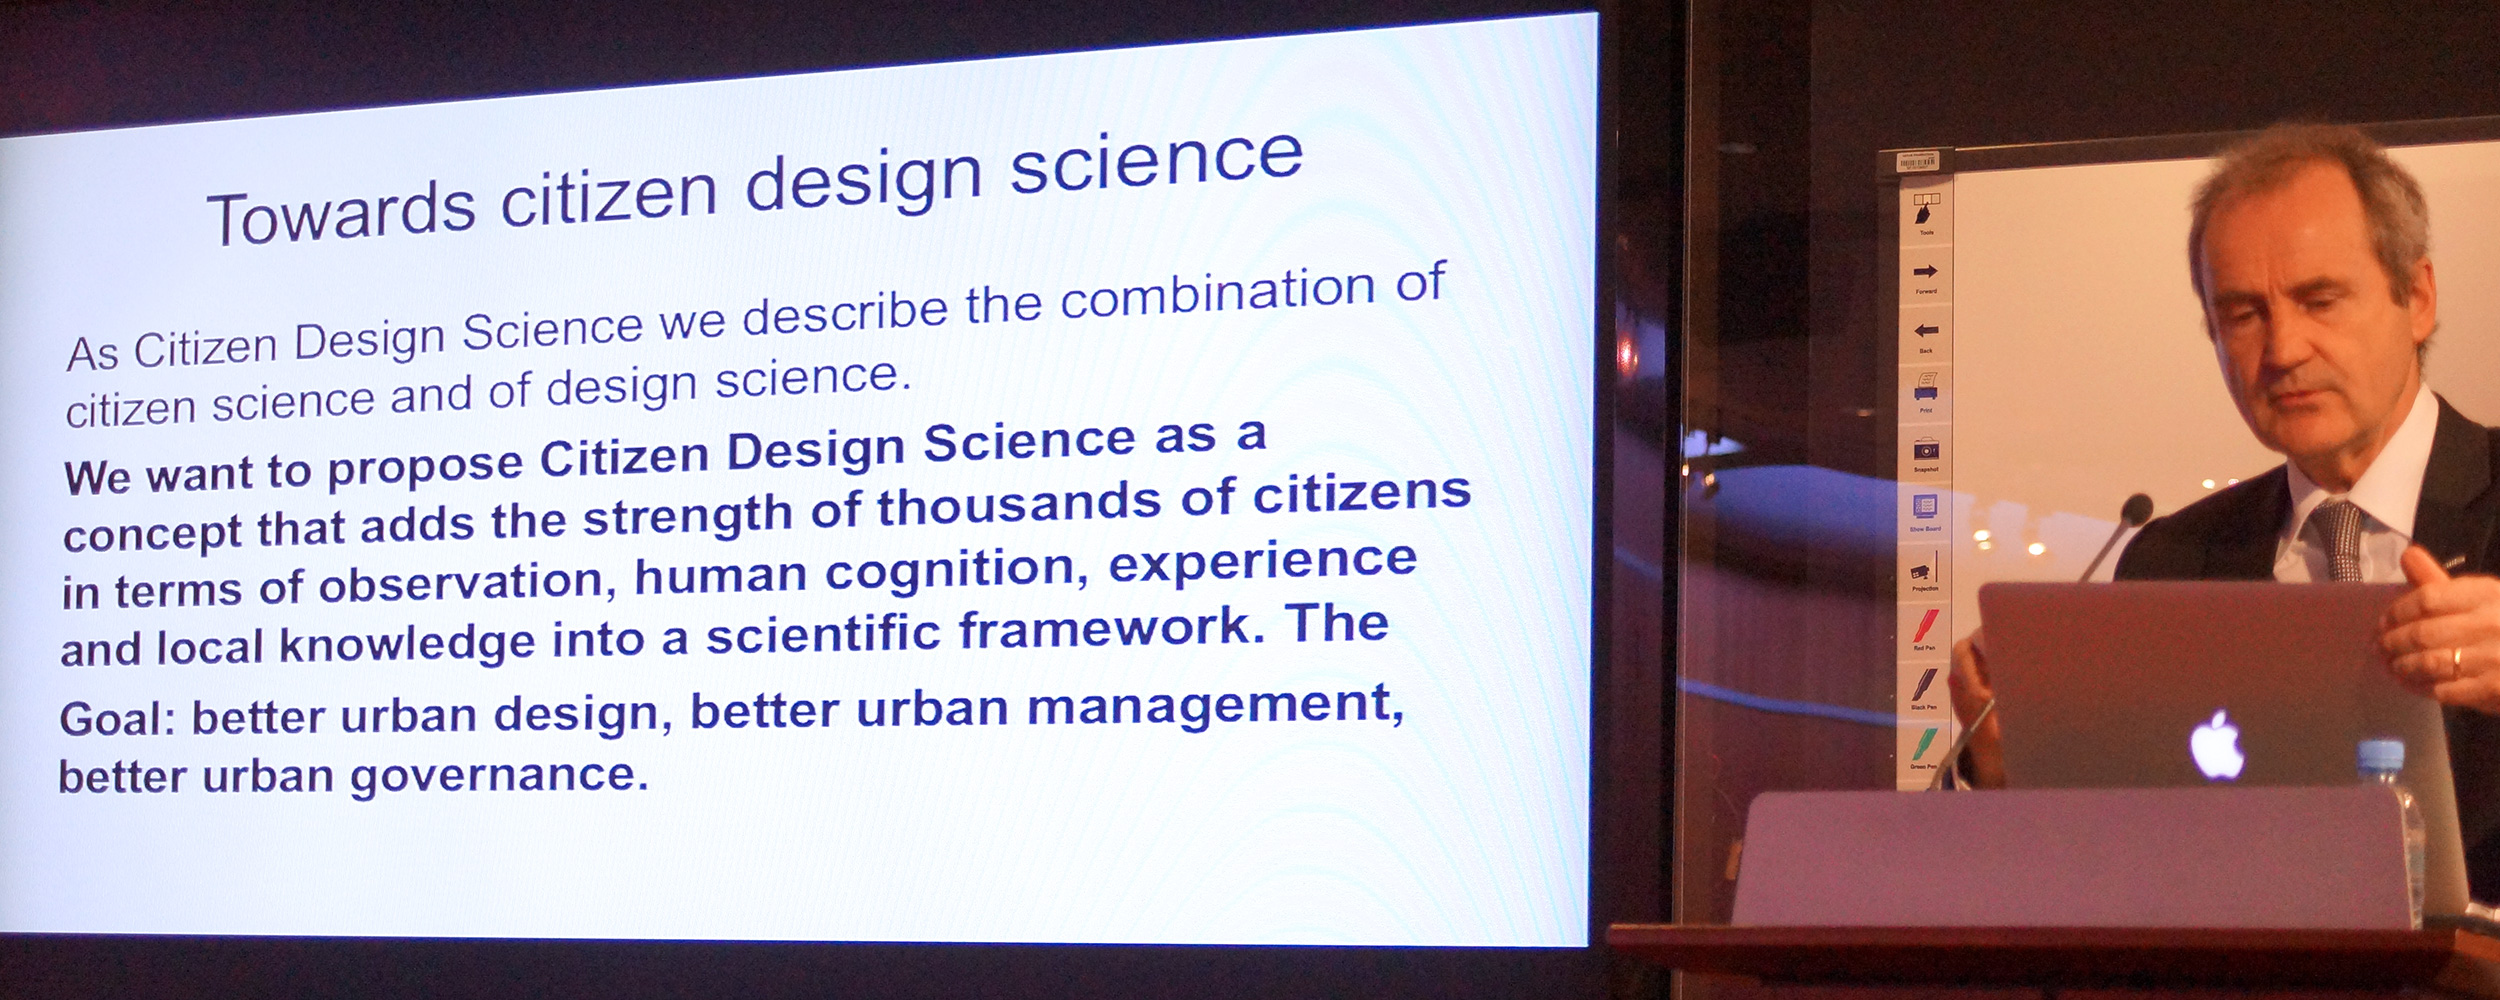 Professor Dr Gerhard Schmitt explaining his proposal for Citizen Design Science, Sustainable Urbanism New Directions Workshop, 21 March 2016, University of Qatar, © University of Qatar.